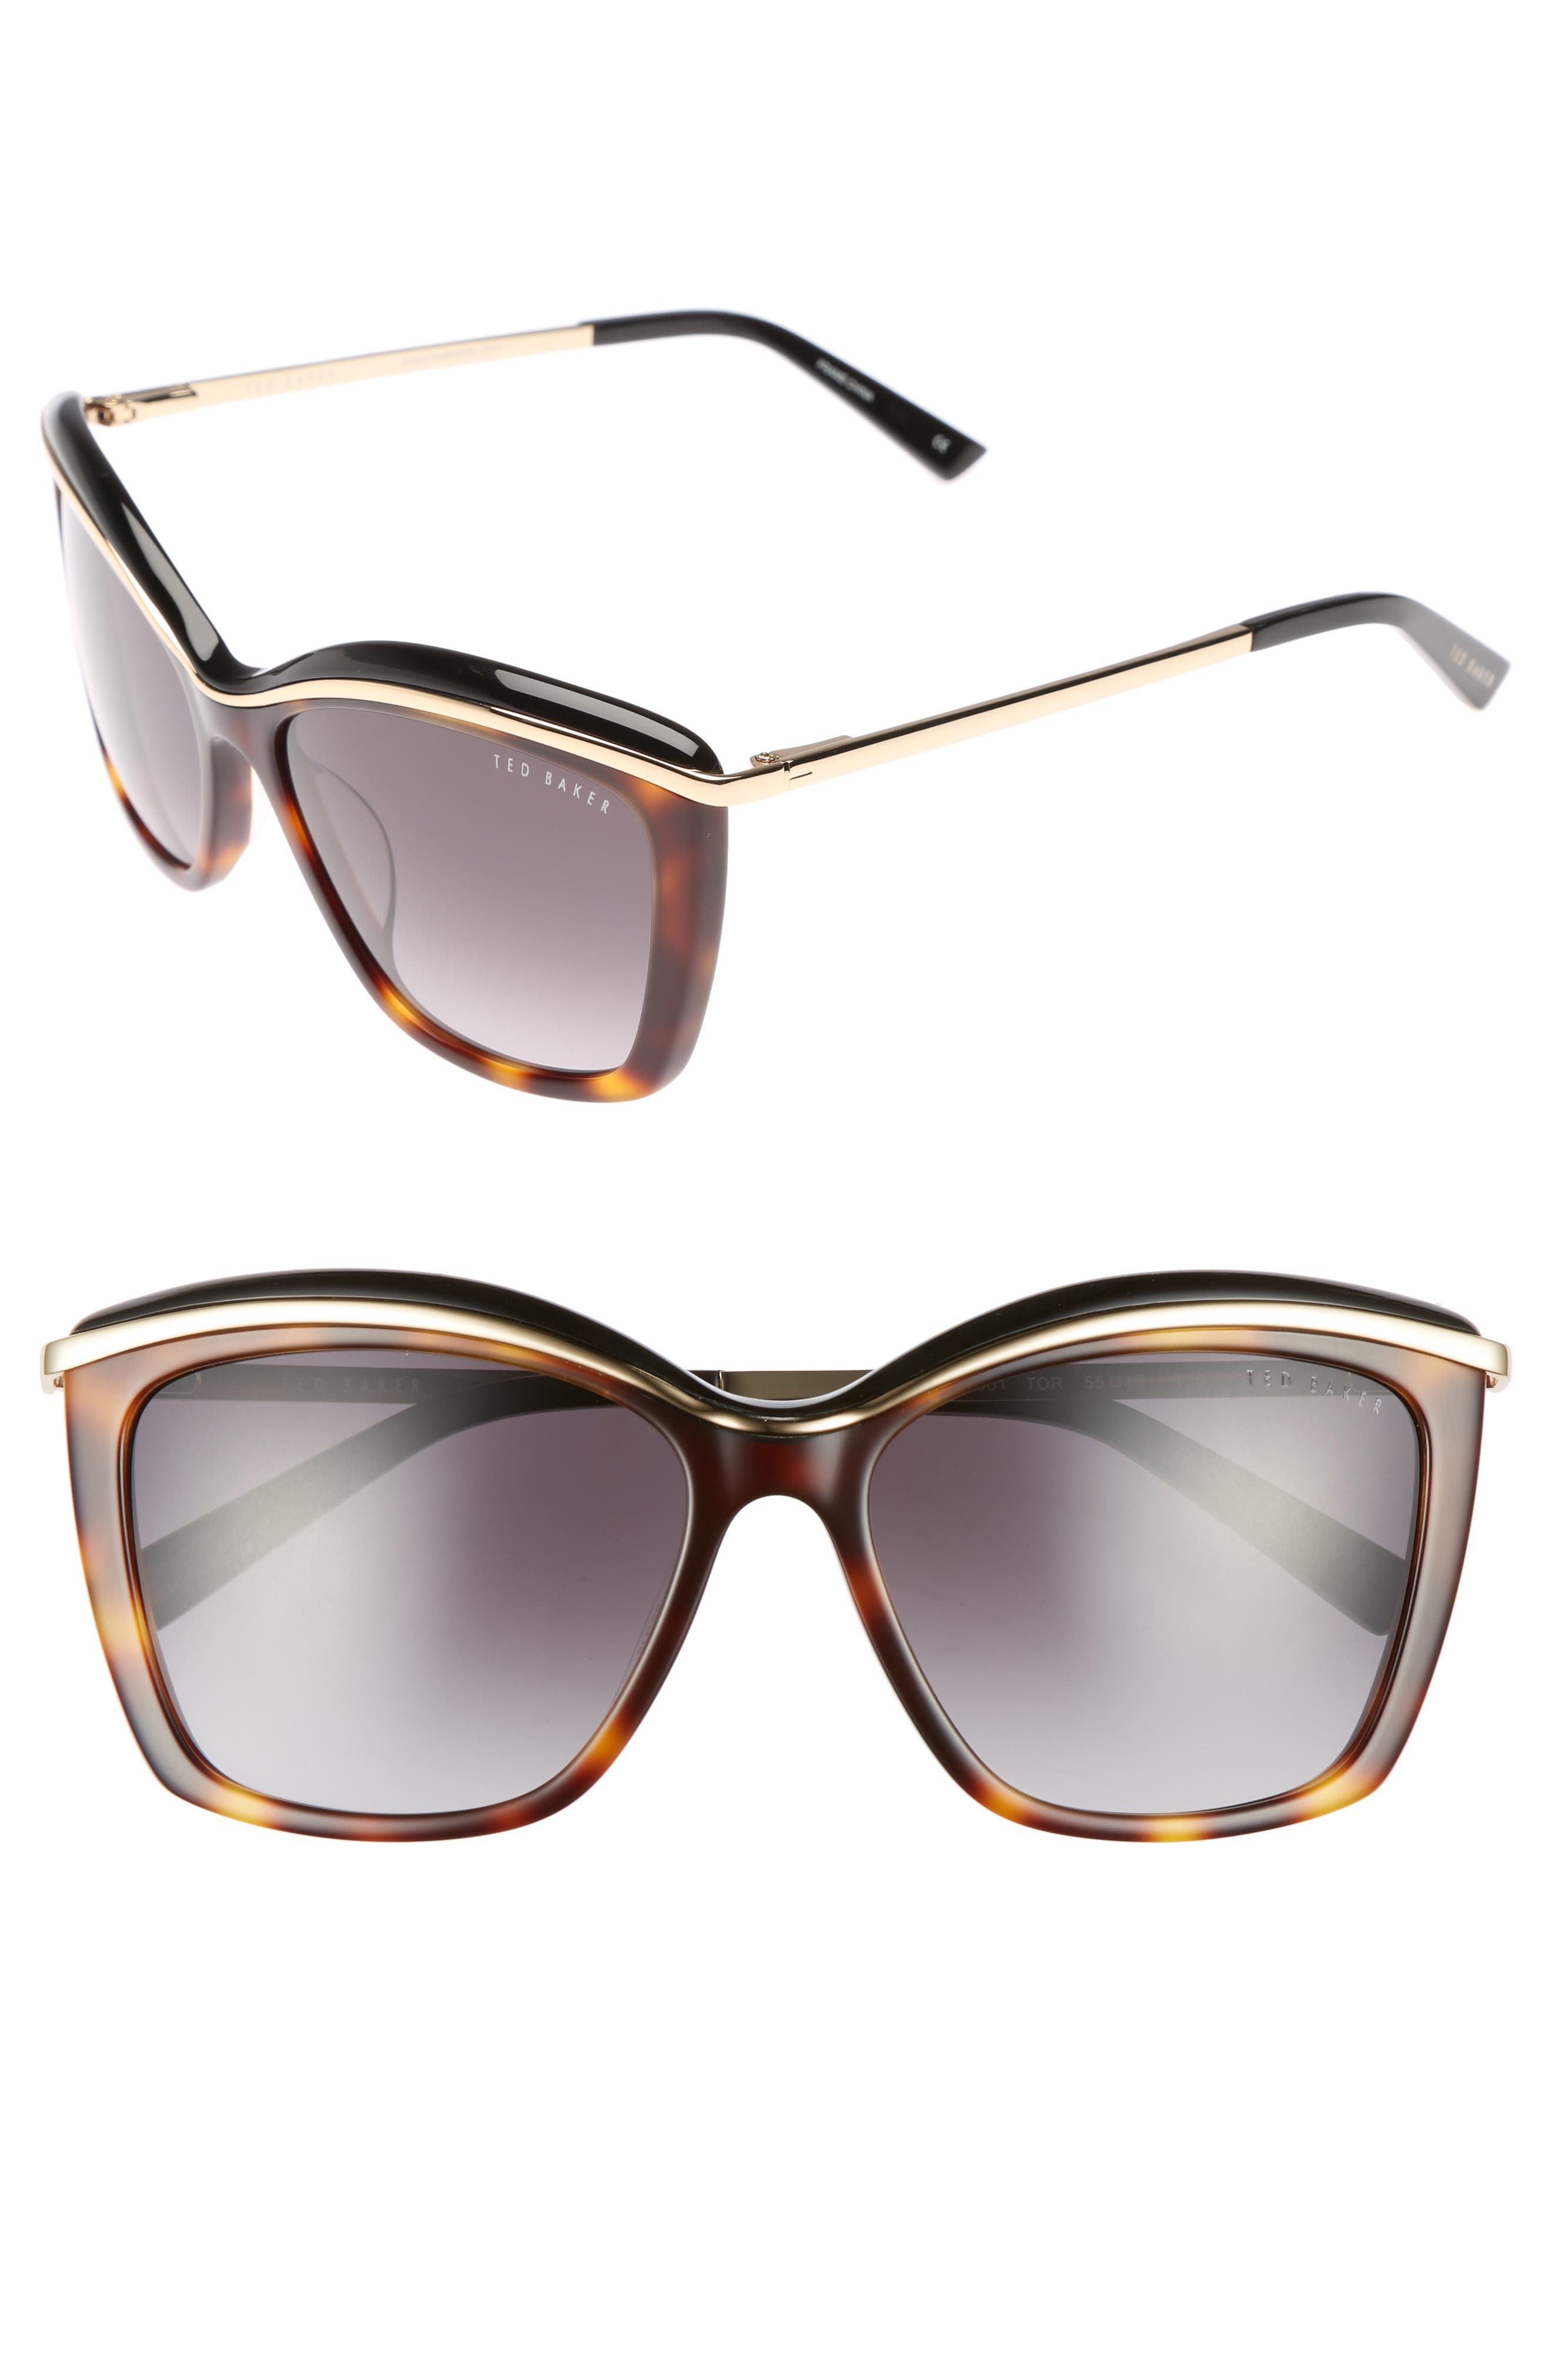 Main Image - Ted Baker London 55mm Cat Eye Sunglasses